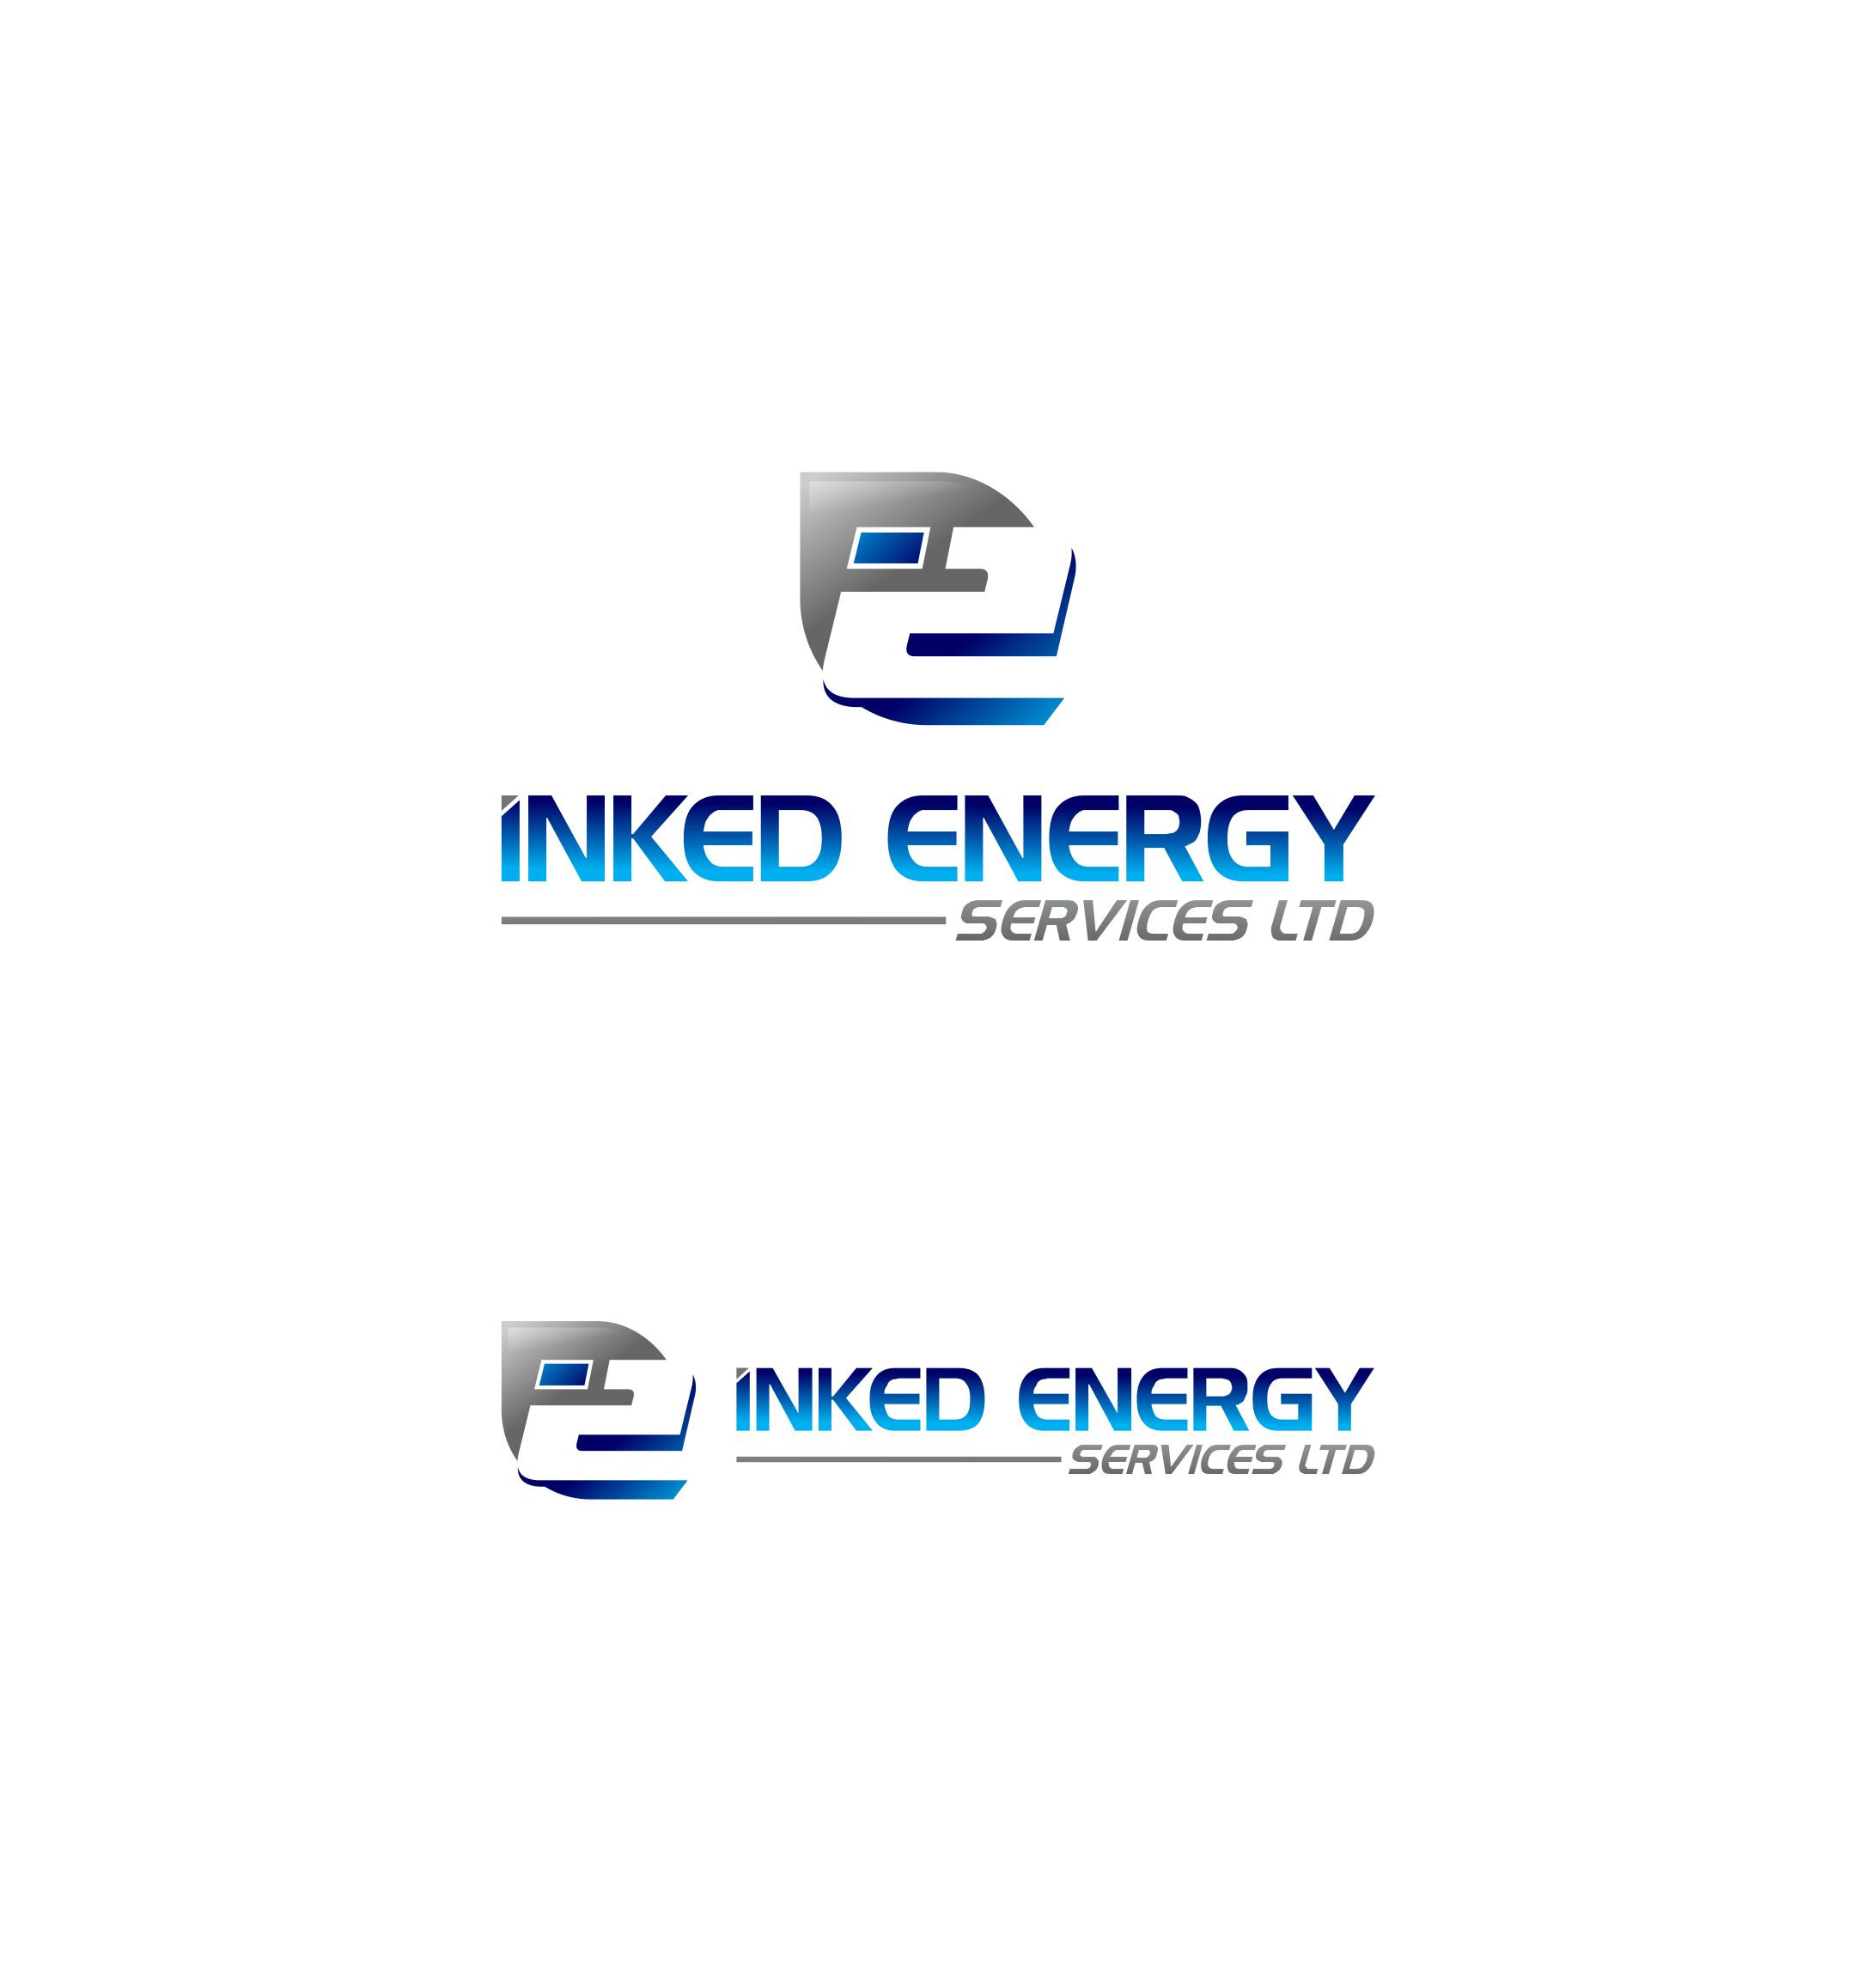 Logo Design by Raymond Garcia - Entry No. 140 in the Logo Design Contest Creative Logo Design for INKED ENERGY SERVICES LTD.